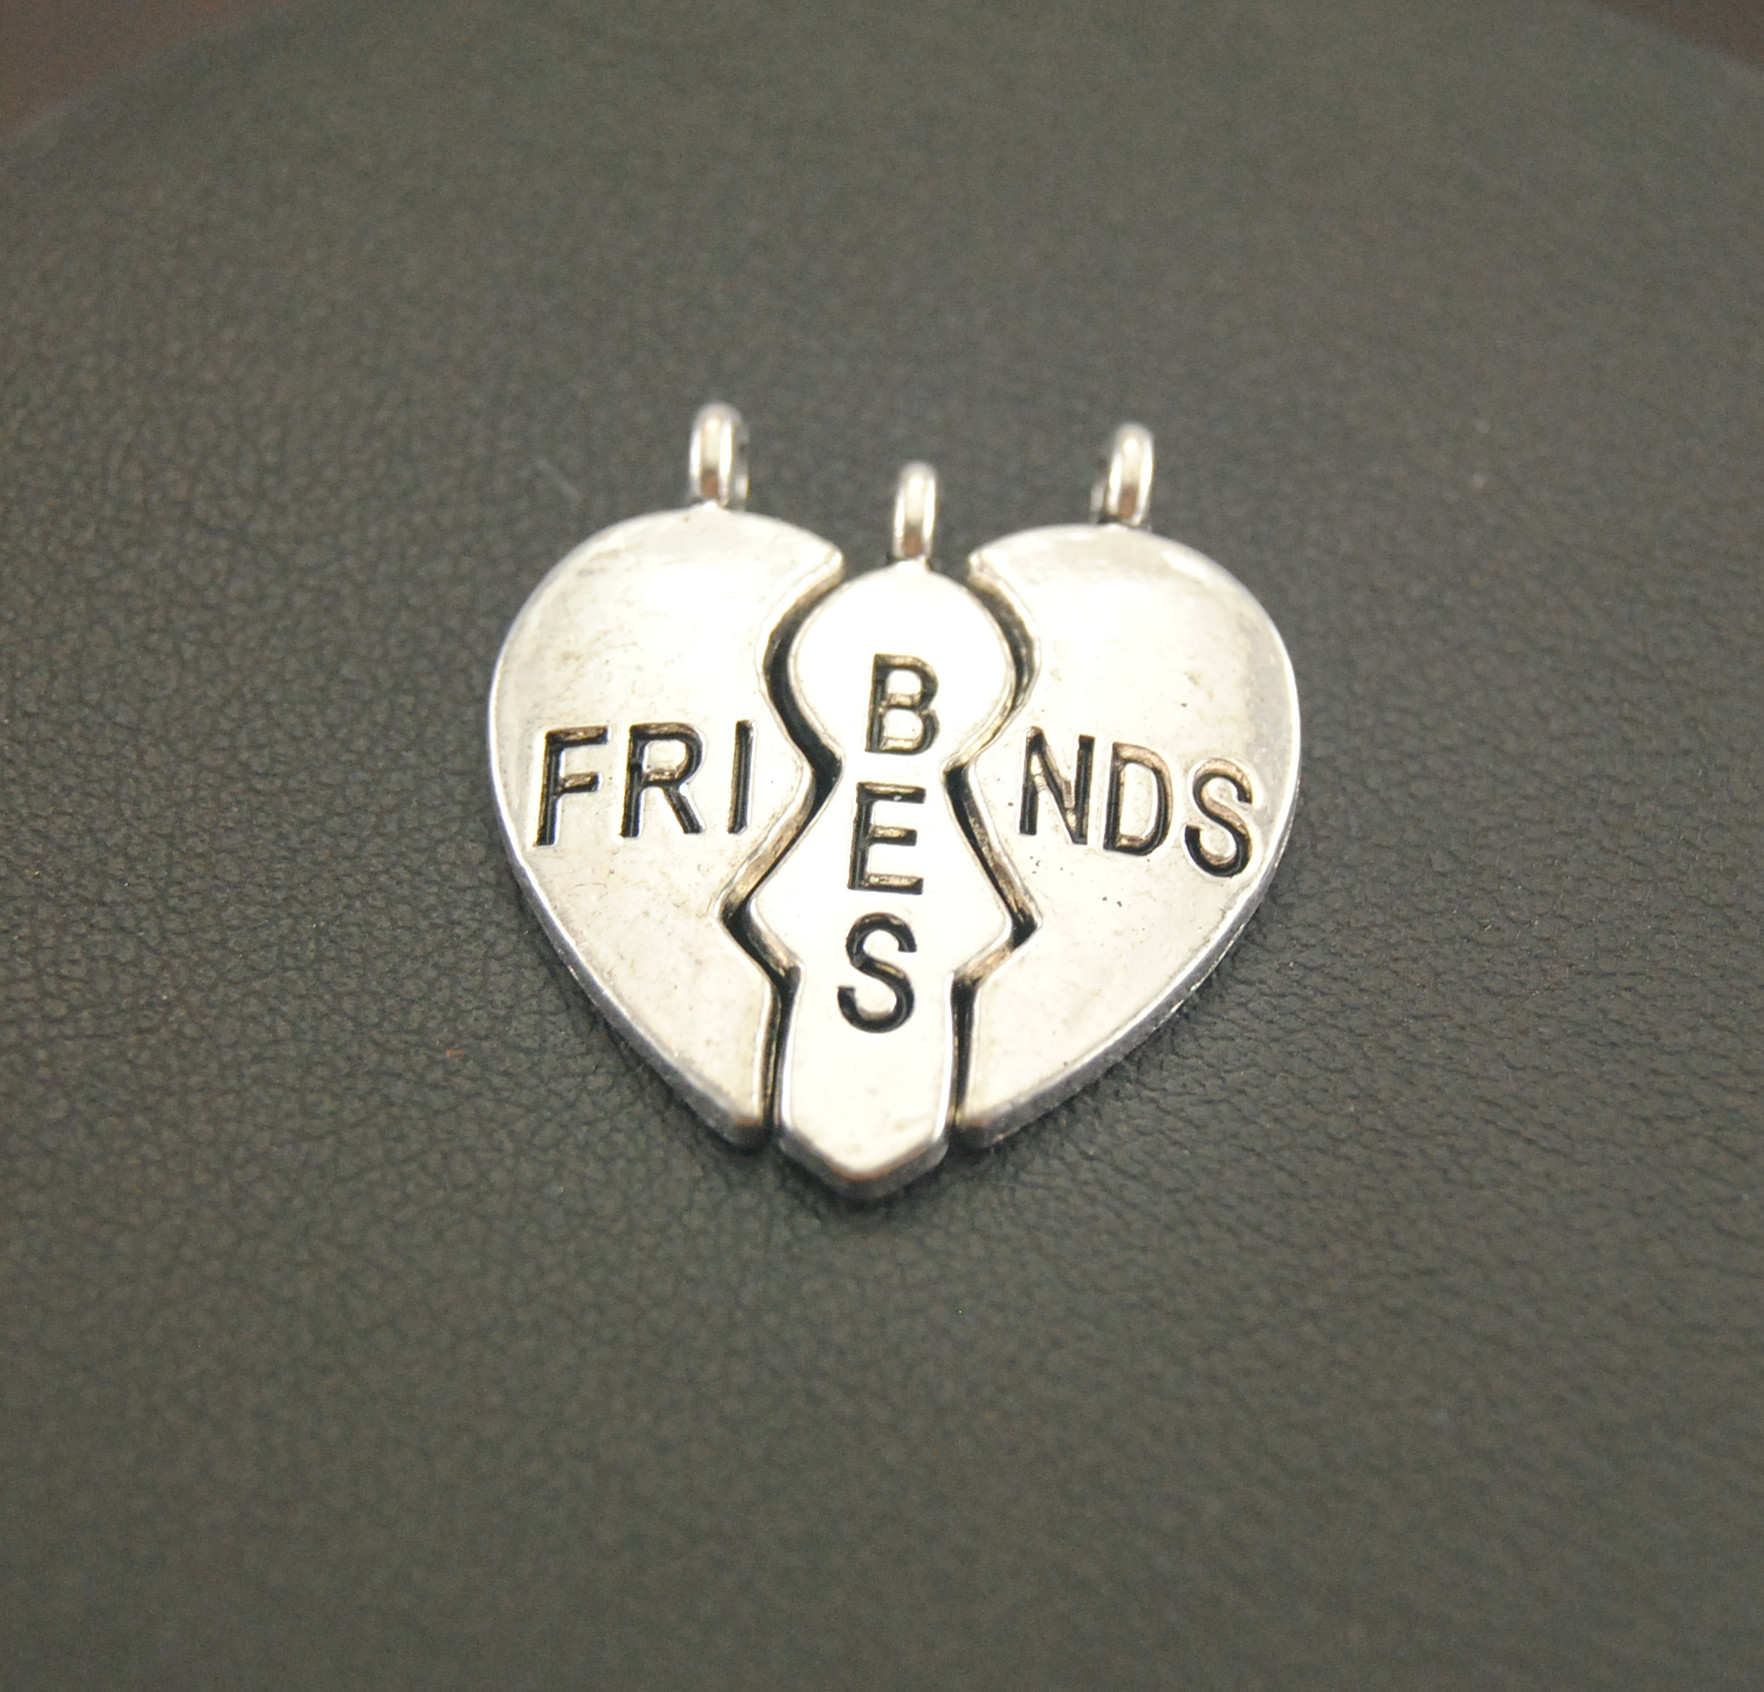 20Pcs Antique Silver Heart Broken Best Friends Charms Finding Jigsaw Puzzle Piece Pendant Necklaces Jewelry 22x24mm A922 image